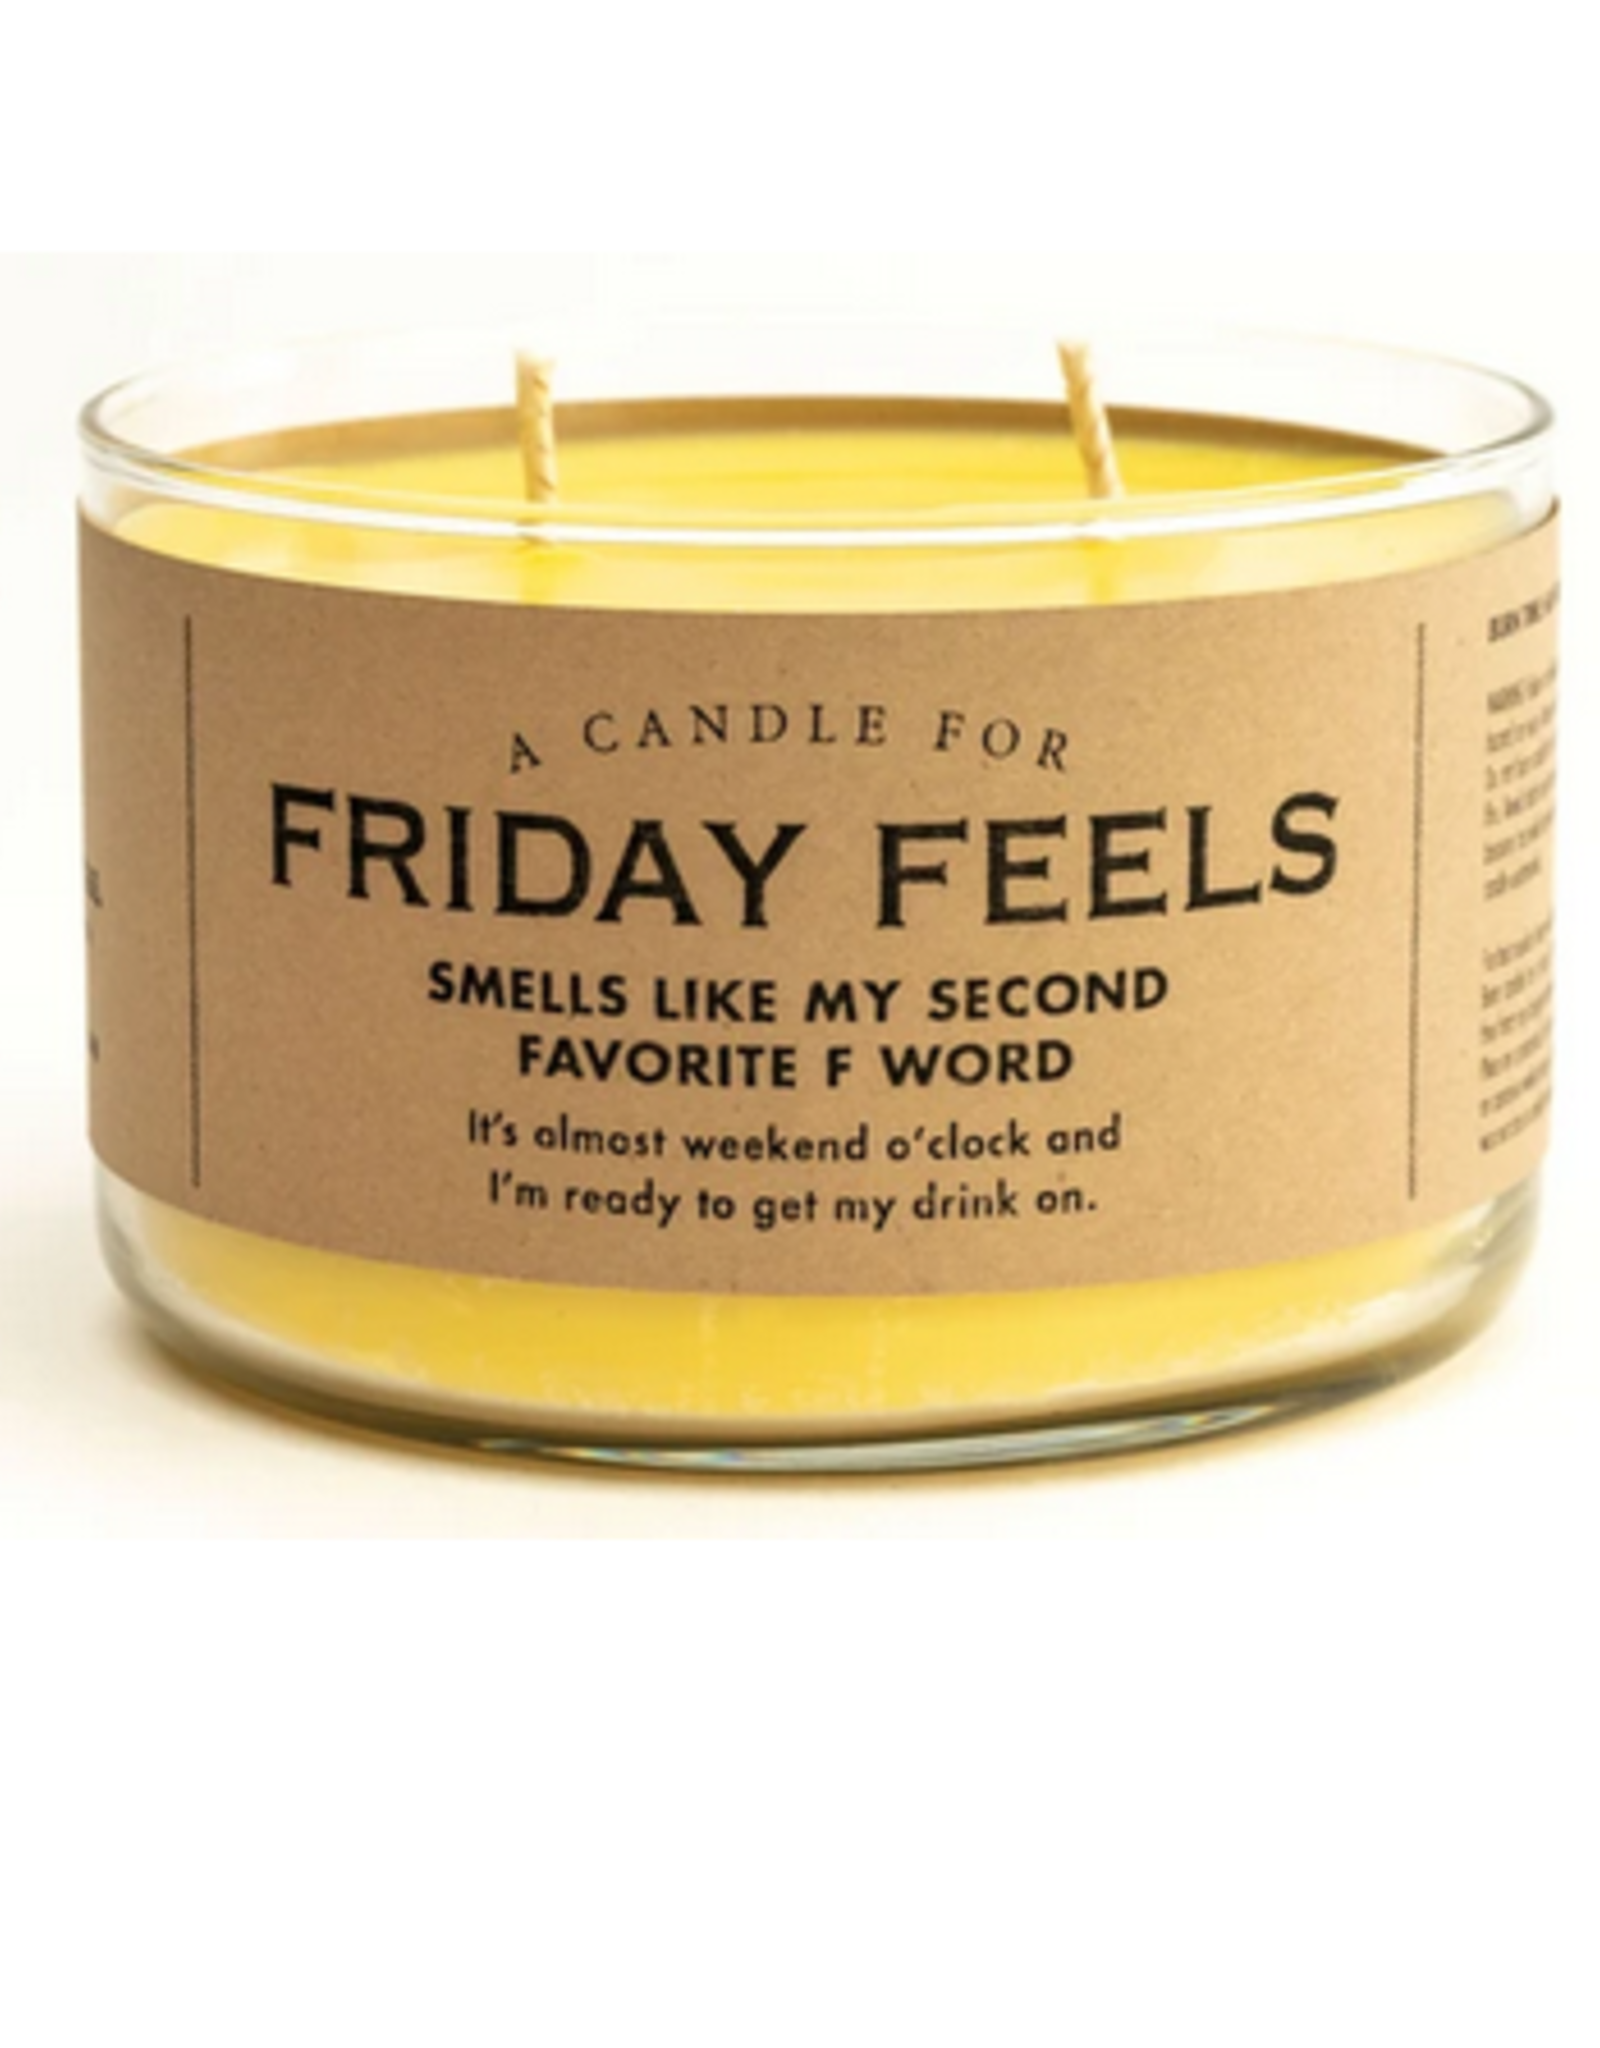 A Candle for Friday Feels